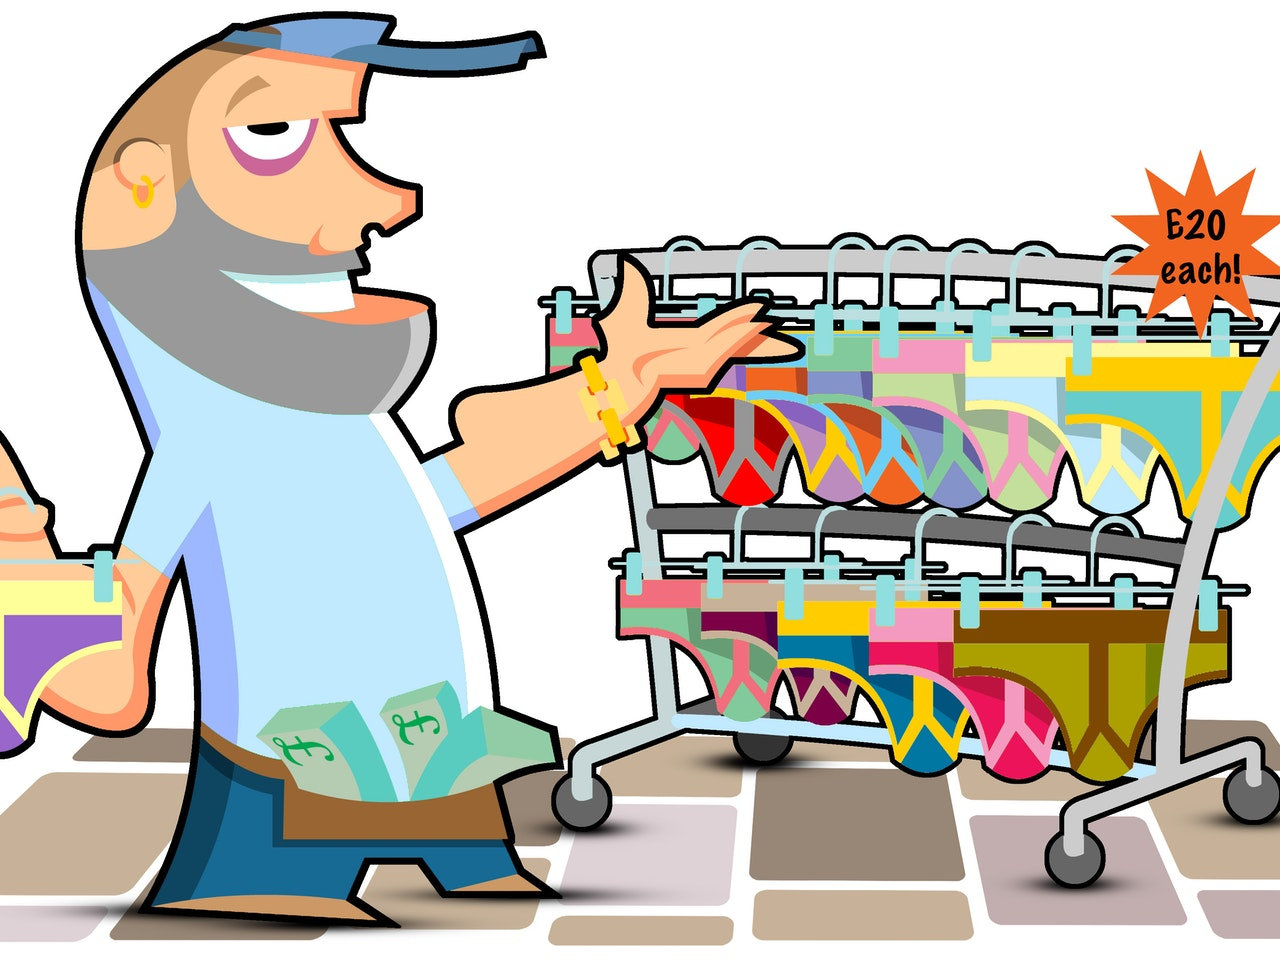 funny happy humorous comical colourful graphic cartoon anime street sales underpants undwerwear car boot sale shopping sales